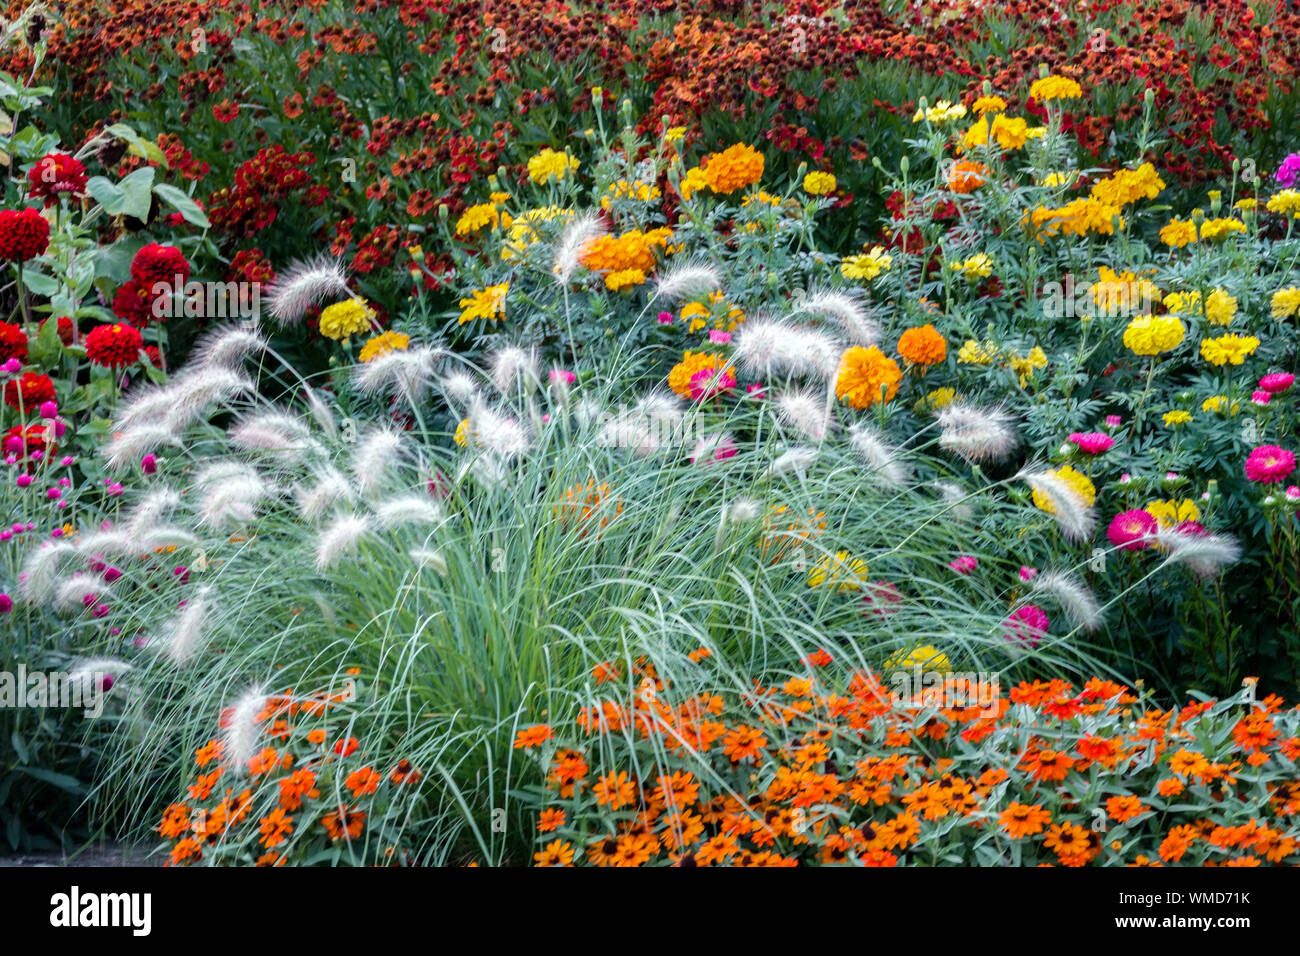 Beautiful Garden Border Colorful Flowers Mixed Annual And